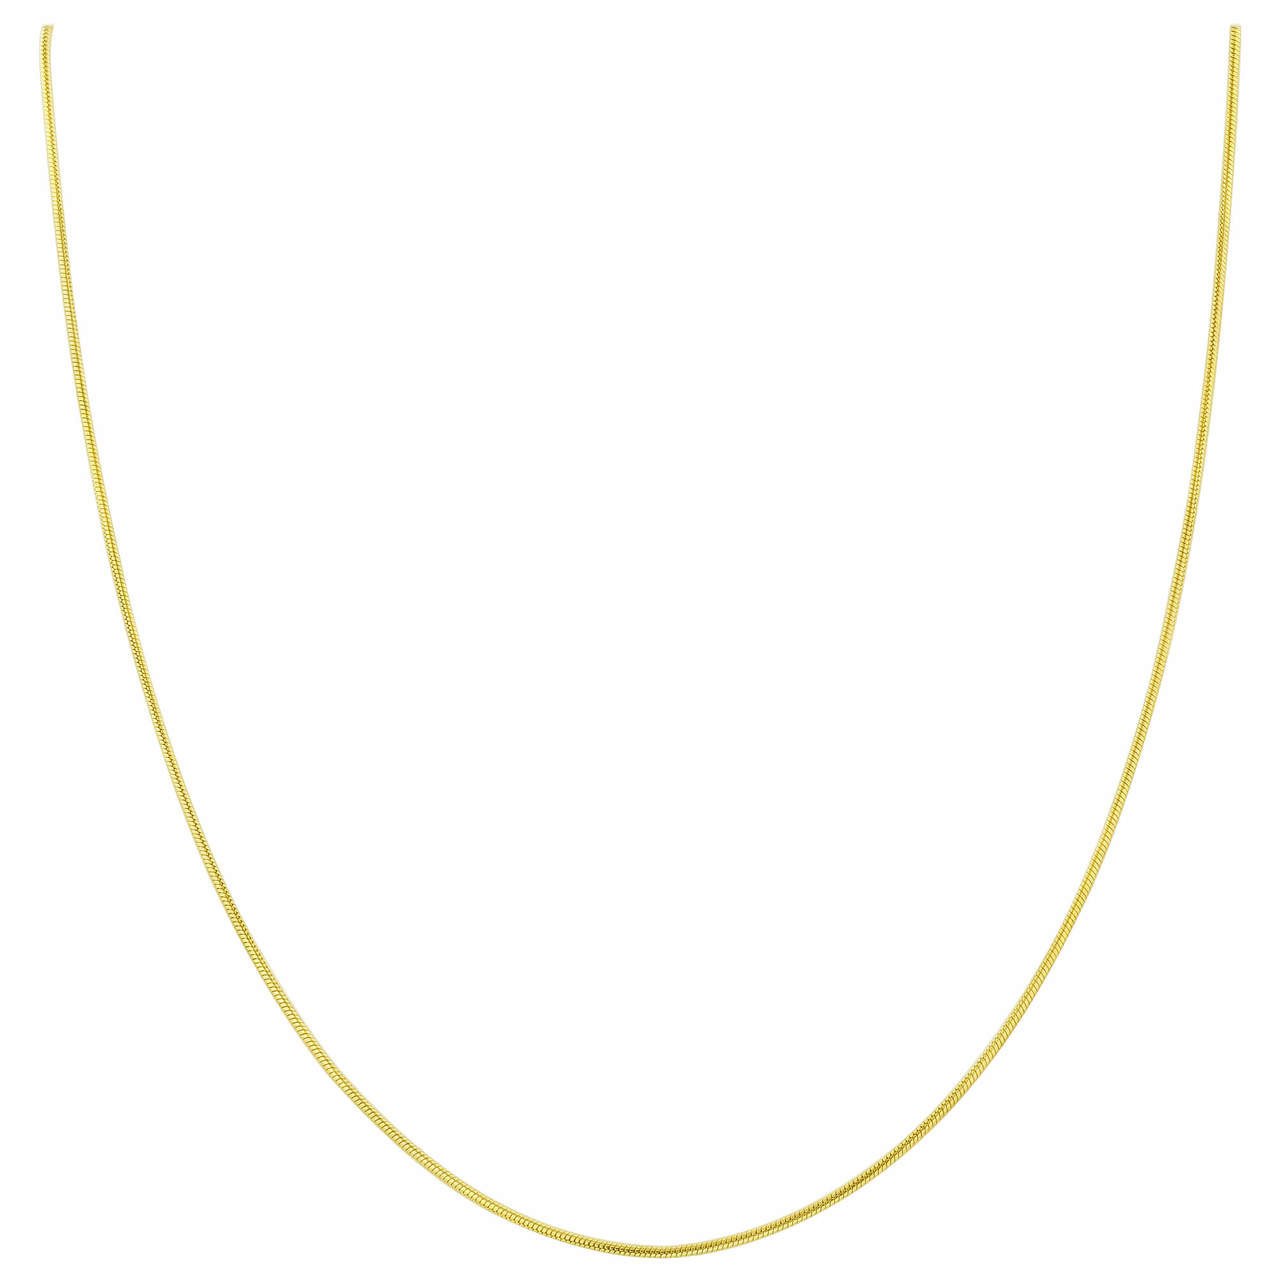 14k Gold Over Vermeil Snake Chain Necklace